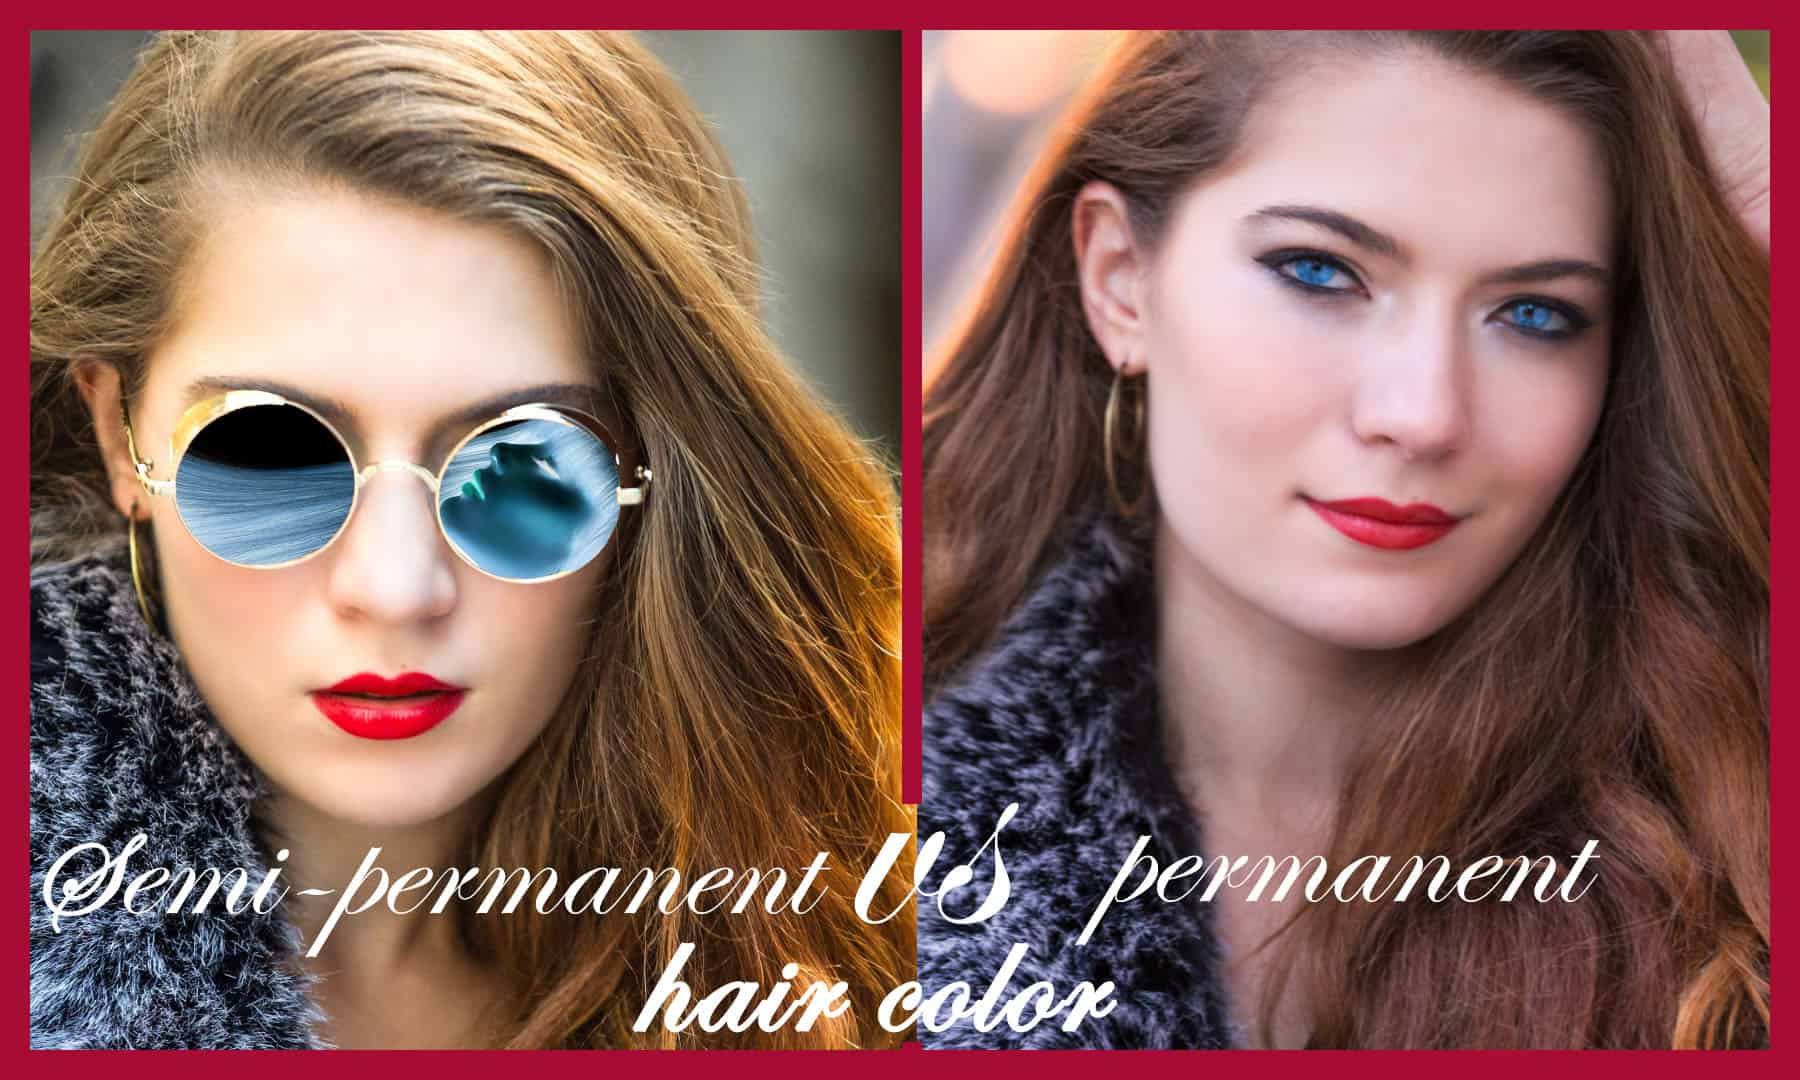 Semi-permanent vs permanent hair color